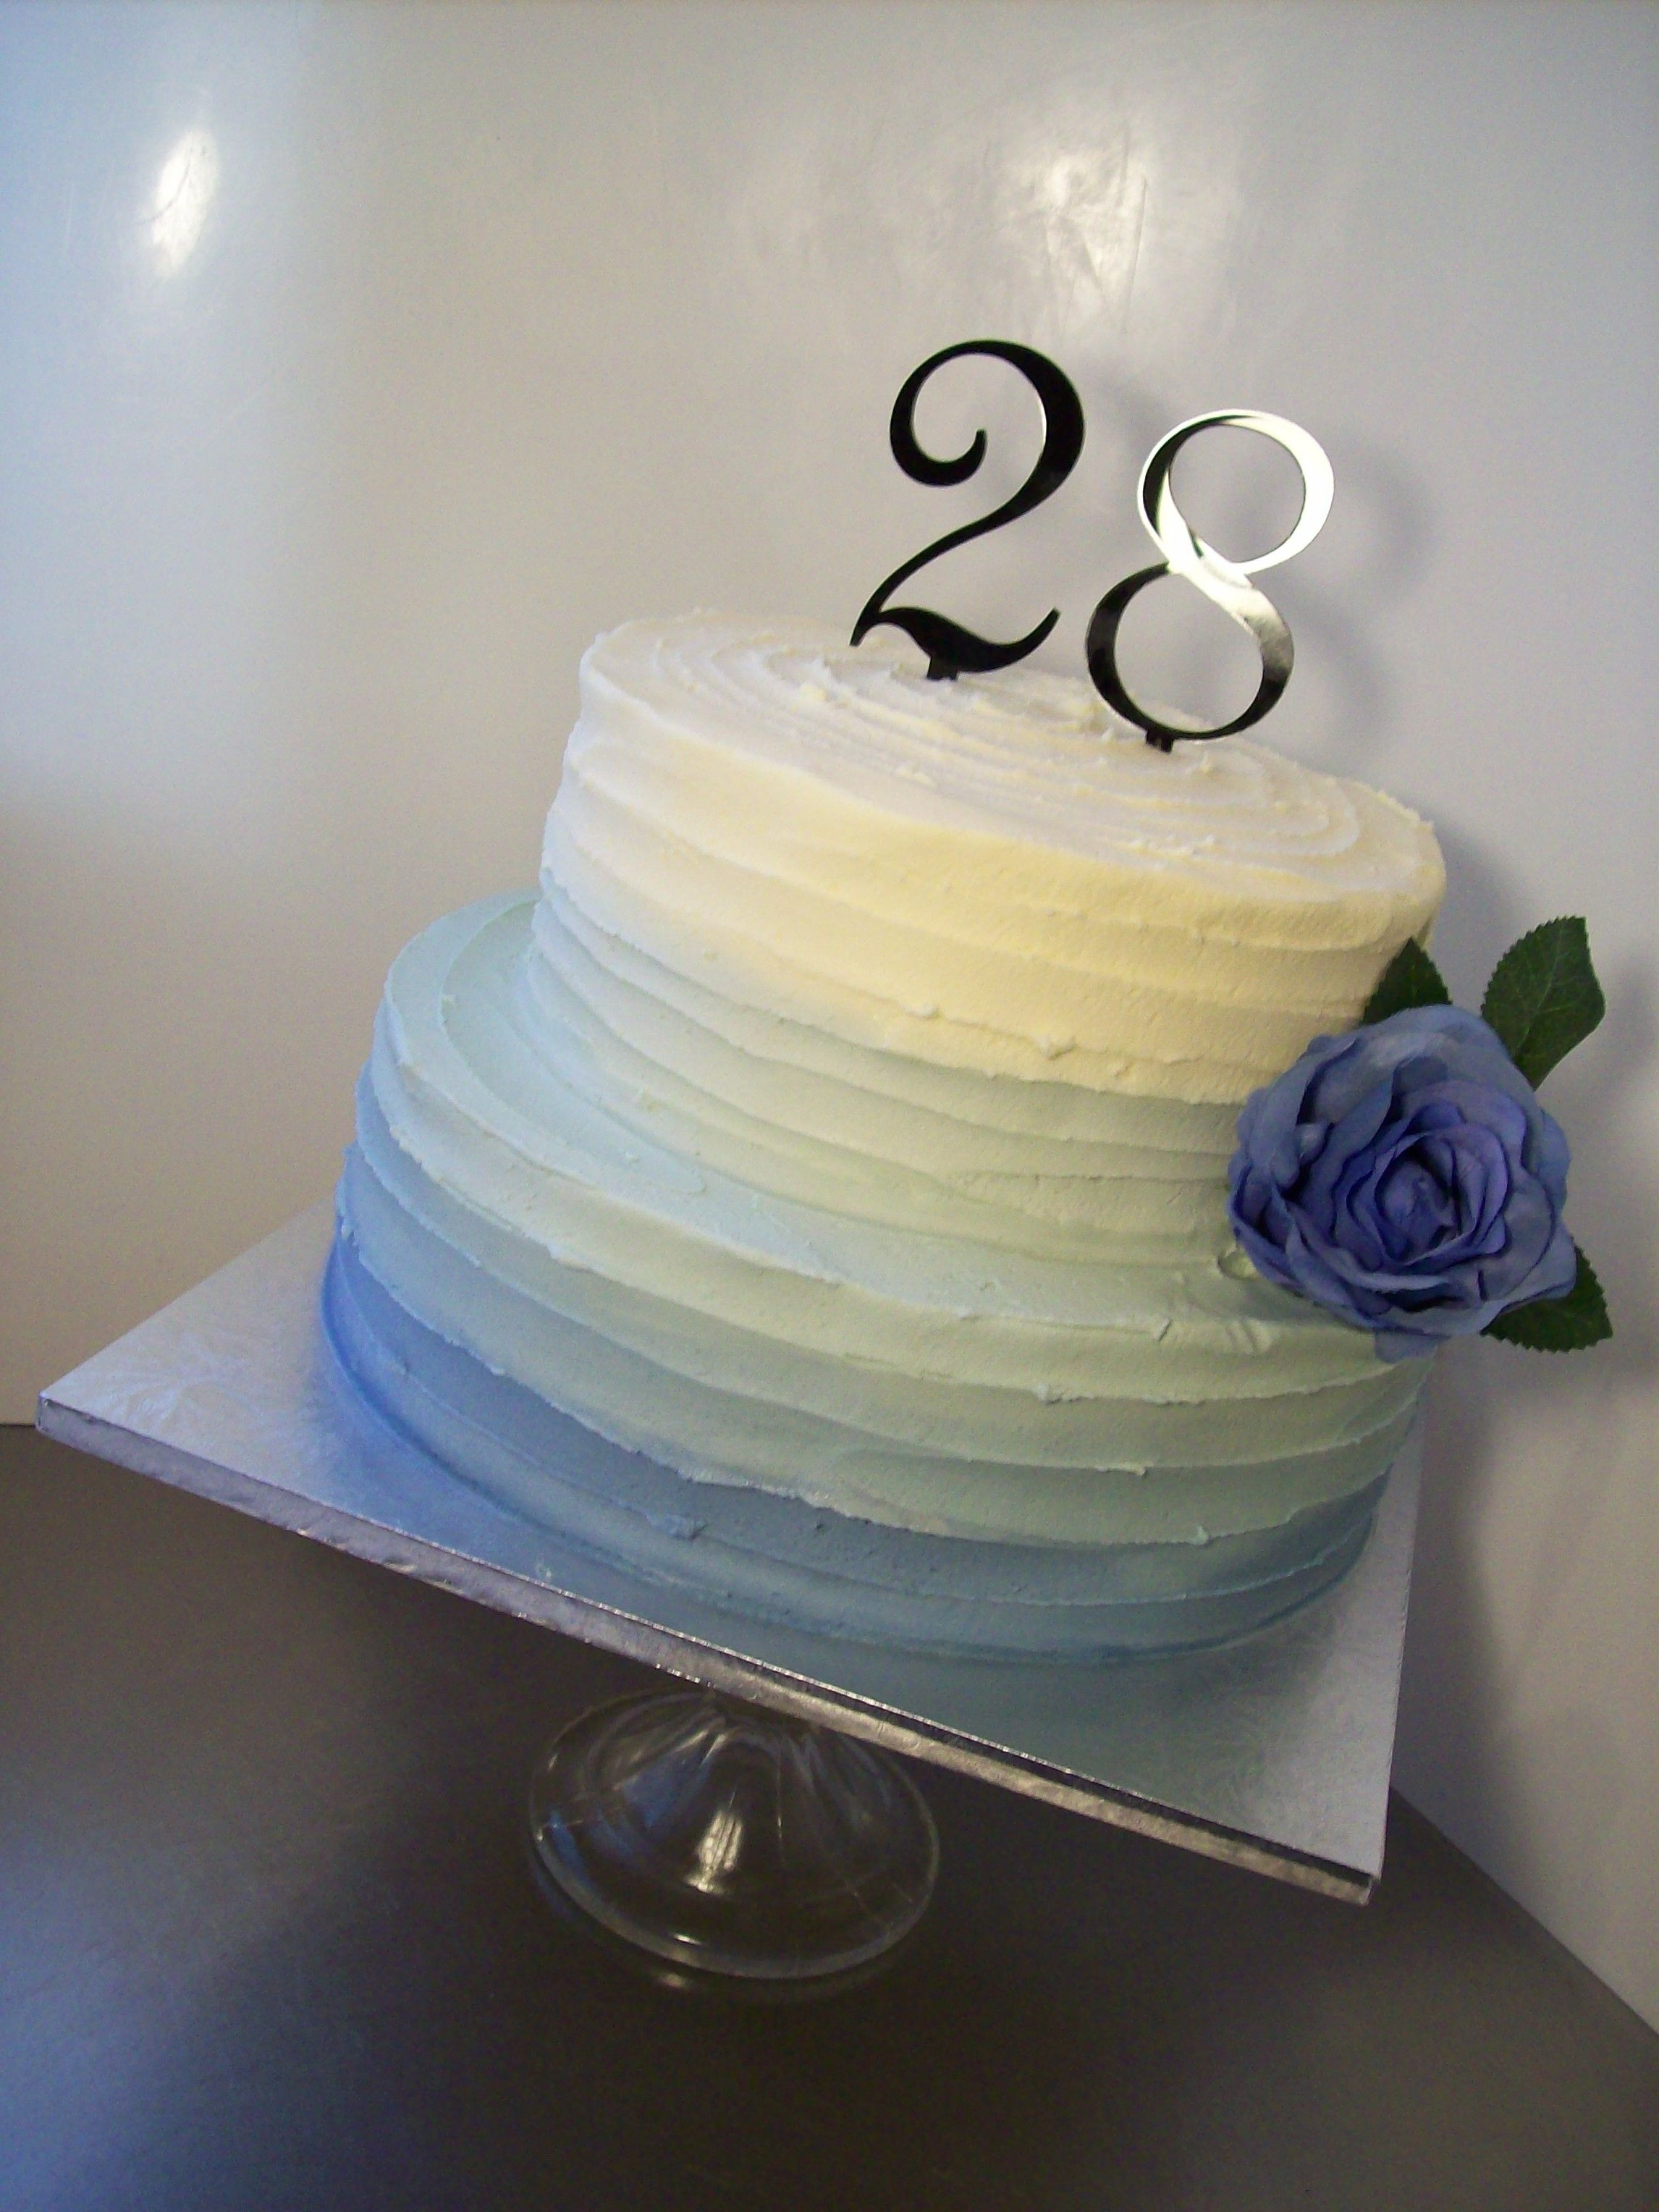 Ombre Cake Auckland 275 21st birthday cake, Cake, Cake shop